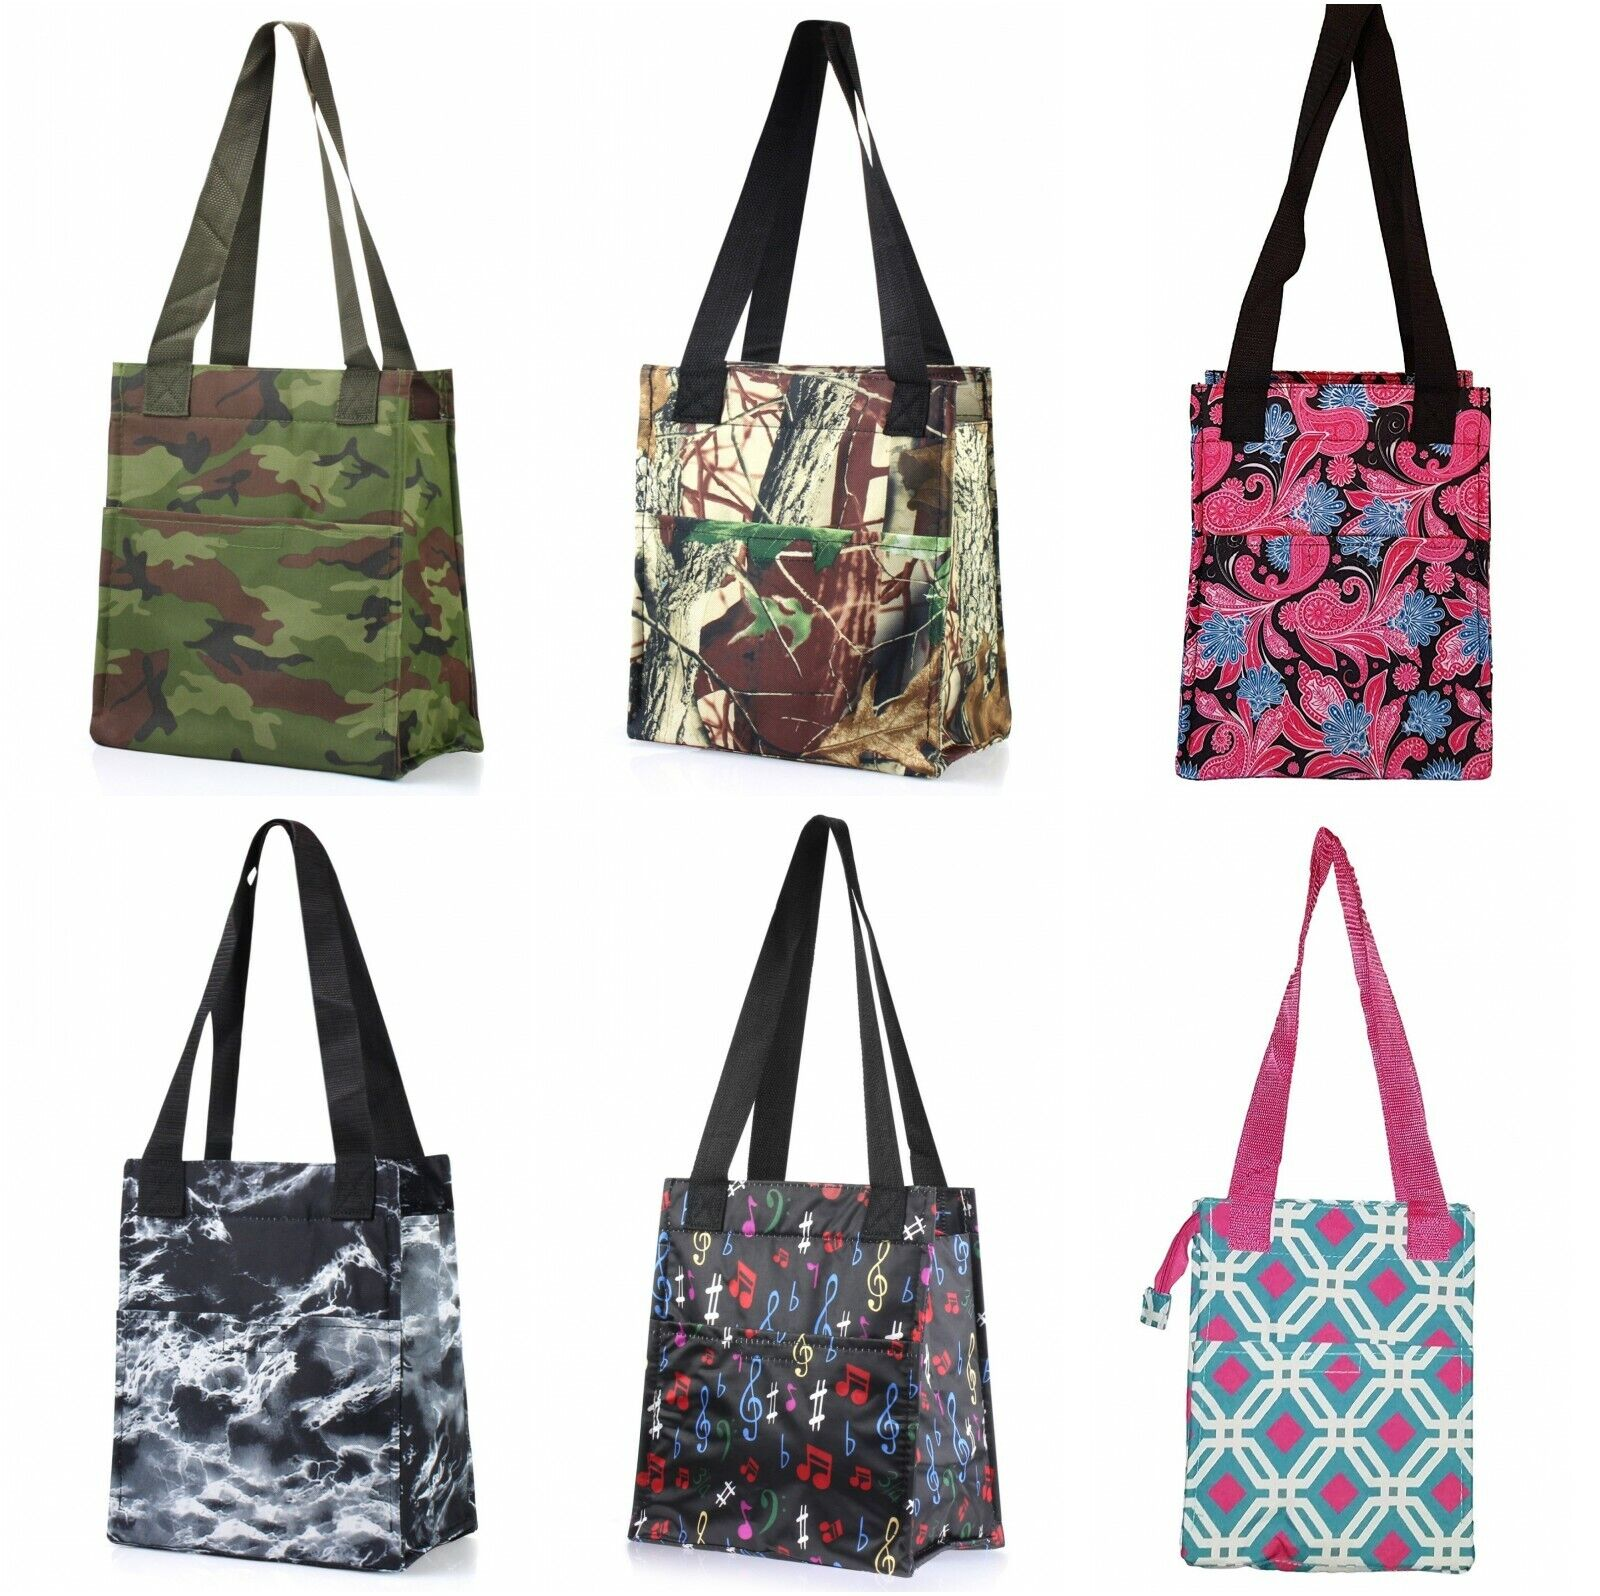 nylon insulated lunch tote bag thermal cooler